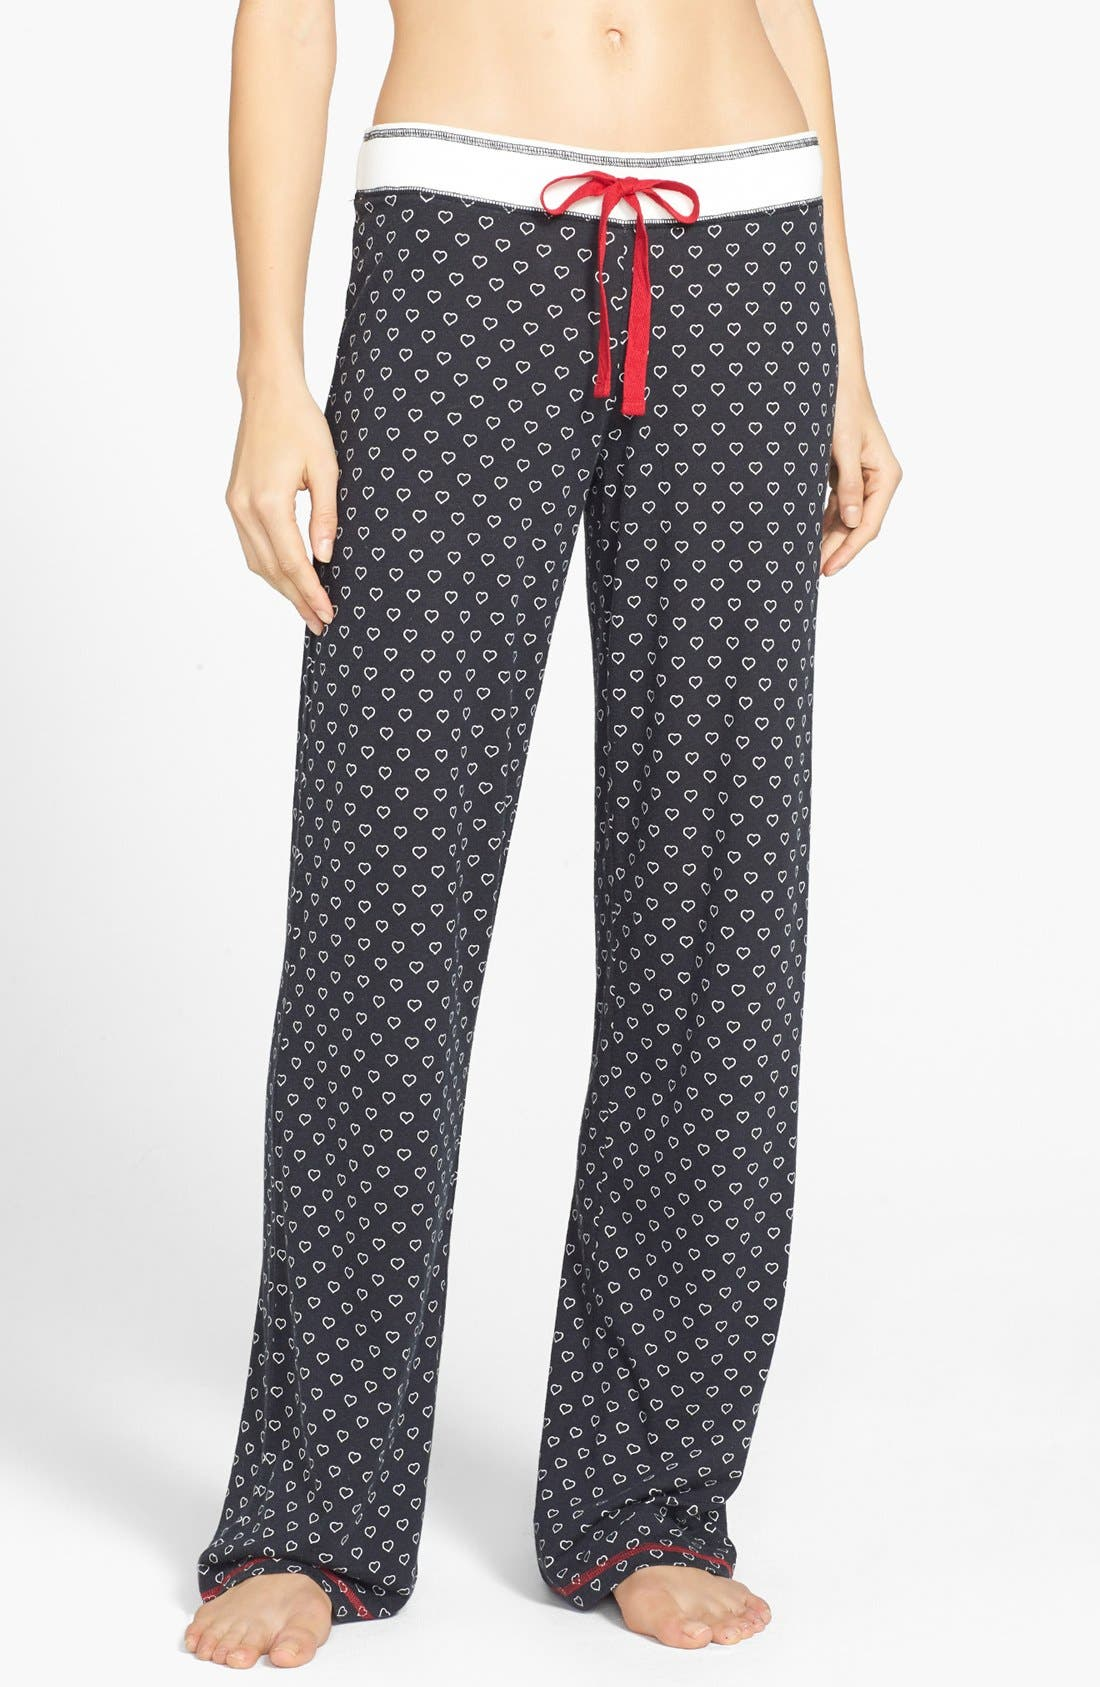 Alternate Image 1 Selected - PJ Salvage 'Heart' Pants